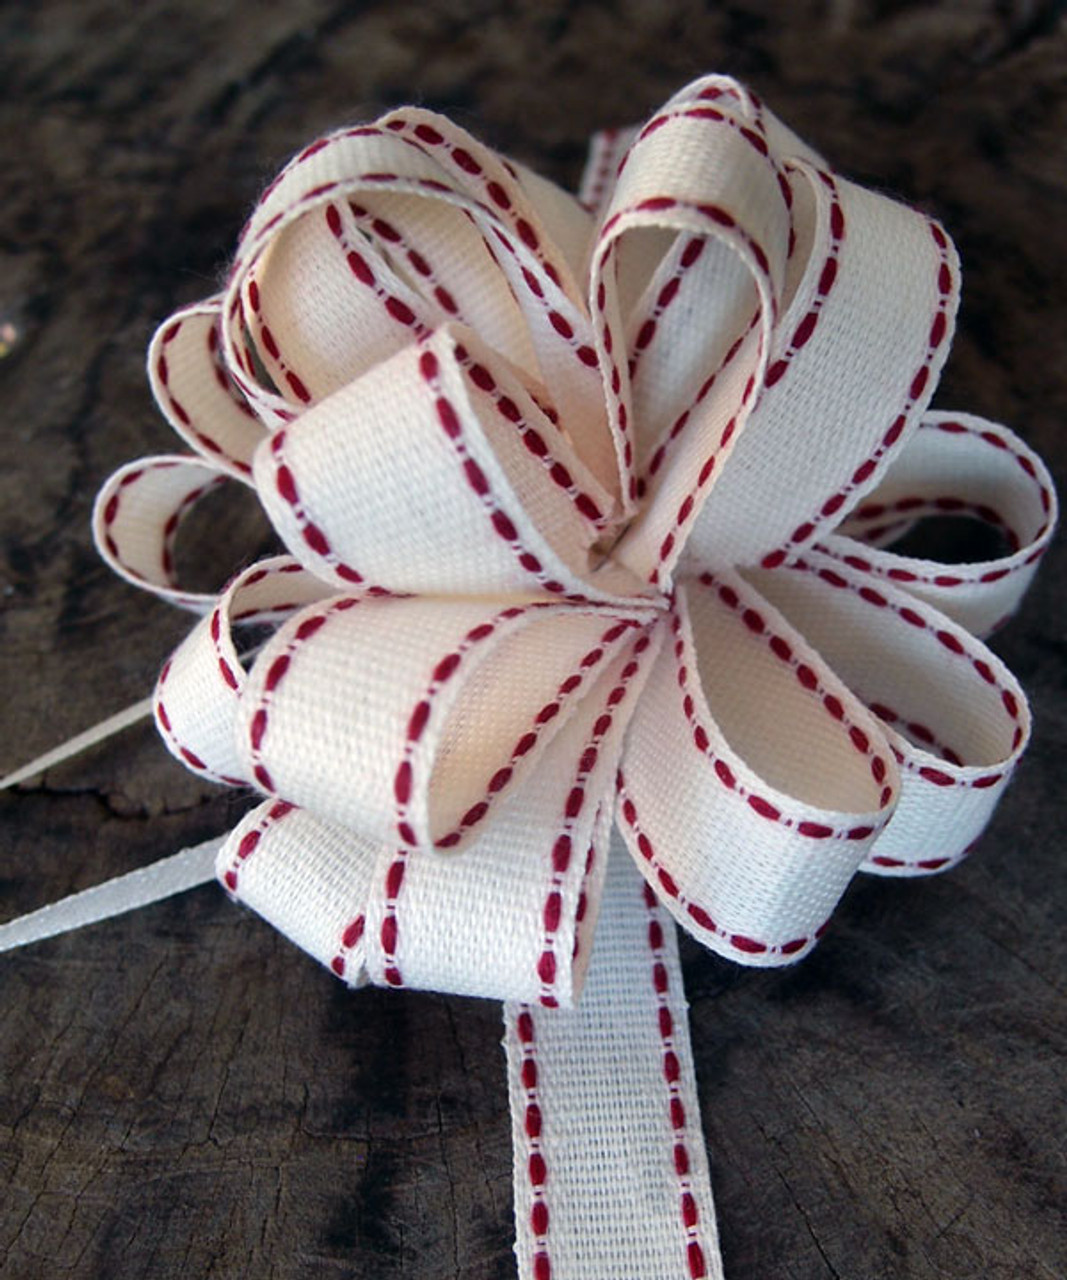 Wholesale cotton pull bows from Packaging Decor! These Canvas Pull Bow with Red Stitching pull bows are perfect for decorating and packaging of bouquets, floral arrangements, jewelry boxes, and gift baskets.